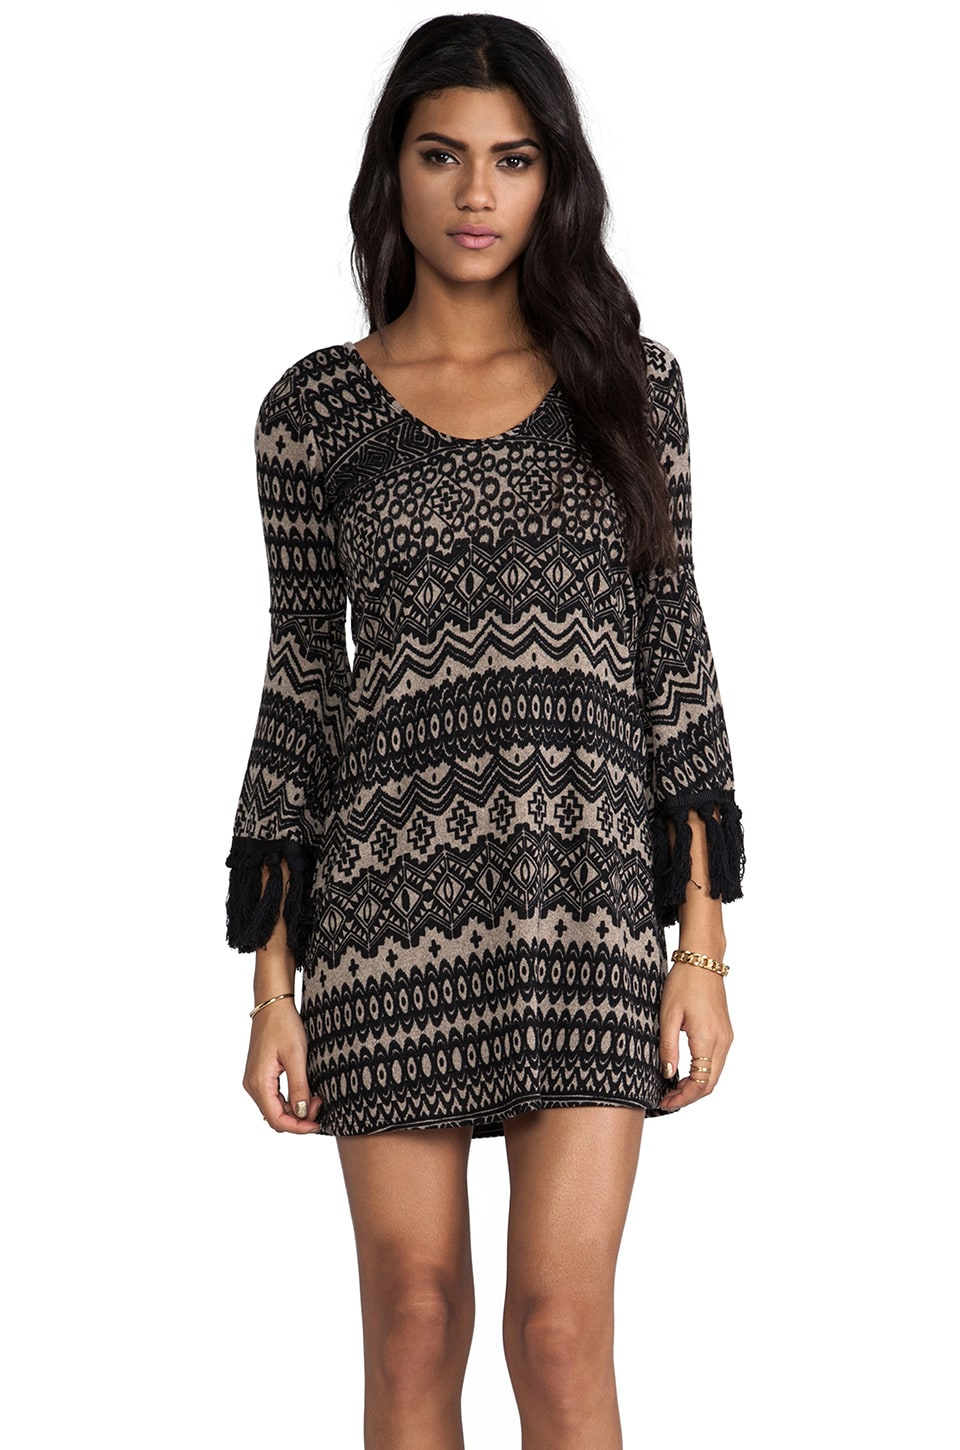 VAVA by Joy Han Adele Bell Sleeve Dress in Taupe